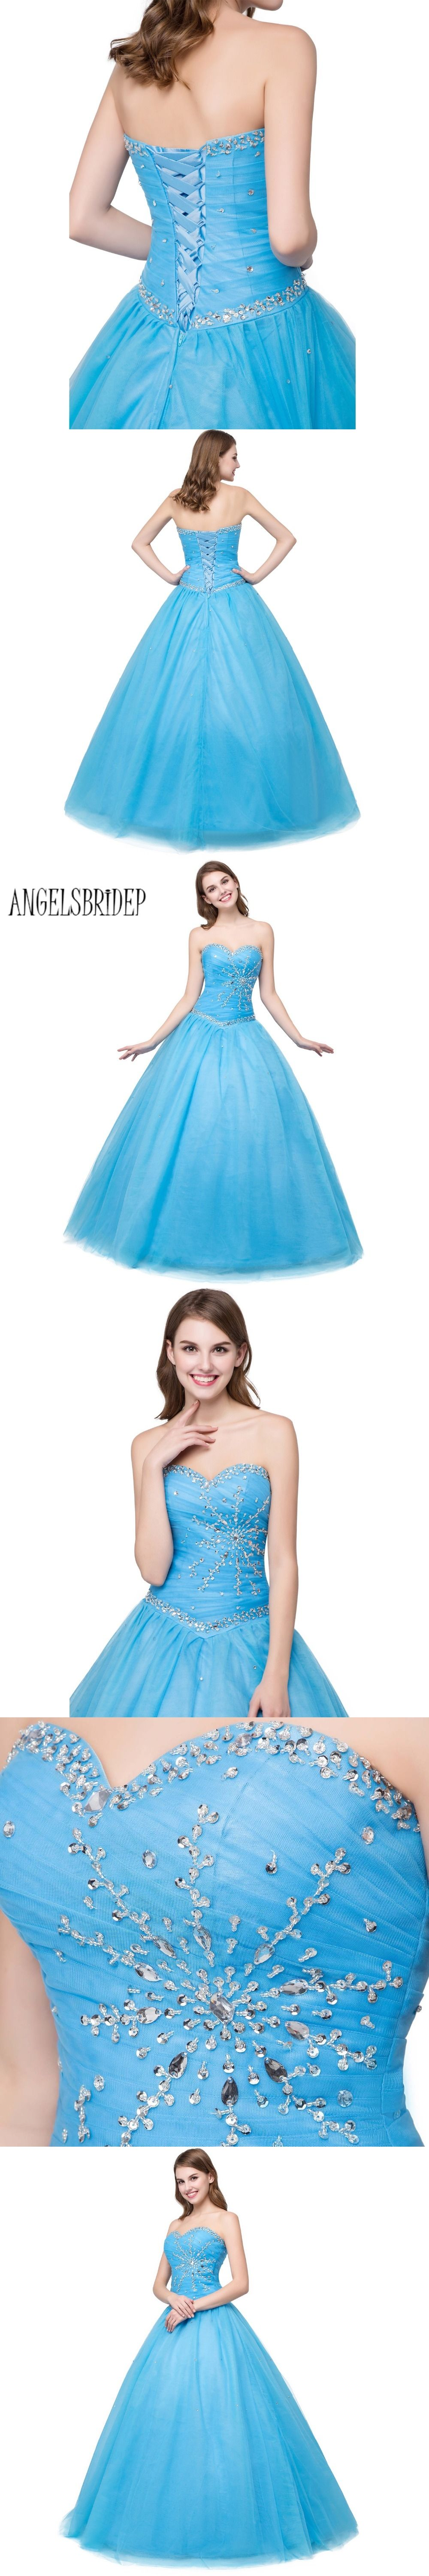 Angelsbridep sweetheart tulle blue prom dresses rhinestones beaded